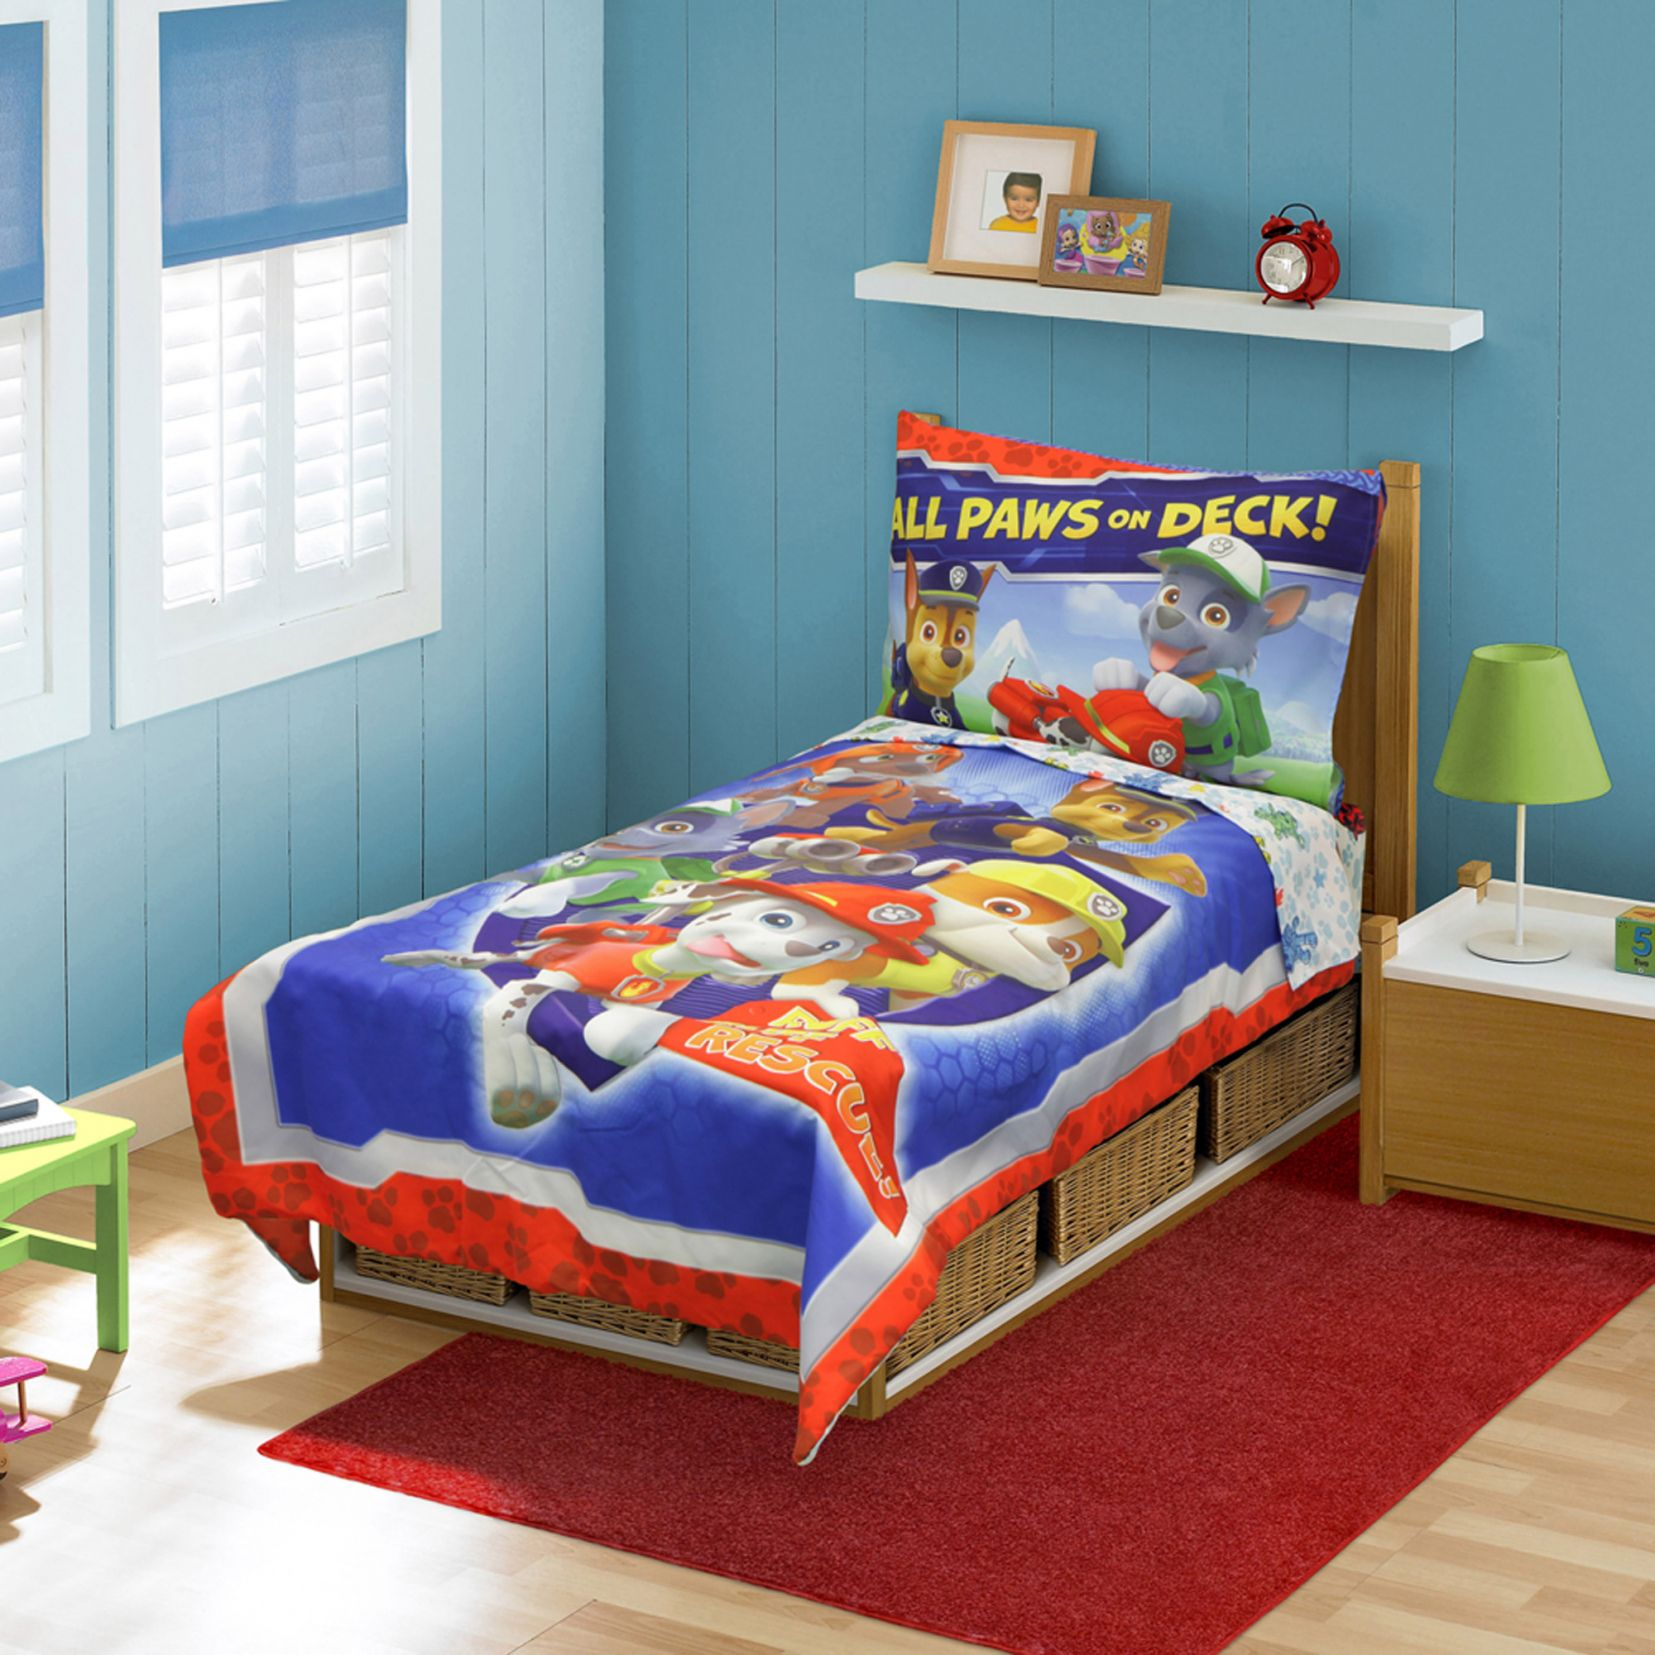 Genial 50+ Toddler Bed Flannel Sheet Set   Decoration Ideas For Bedrooms Check  More At Http